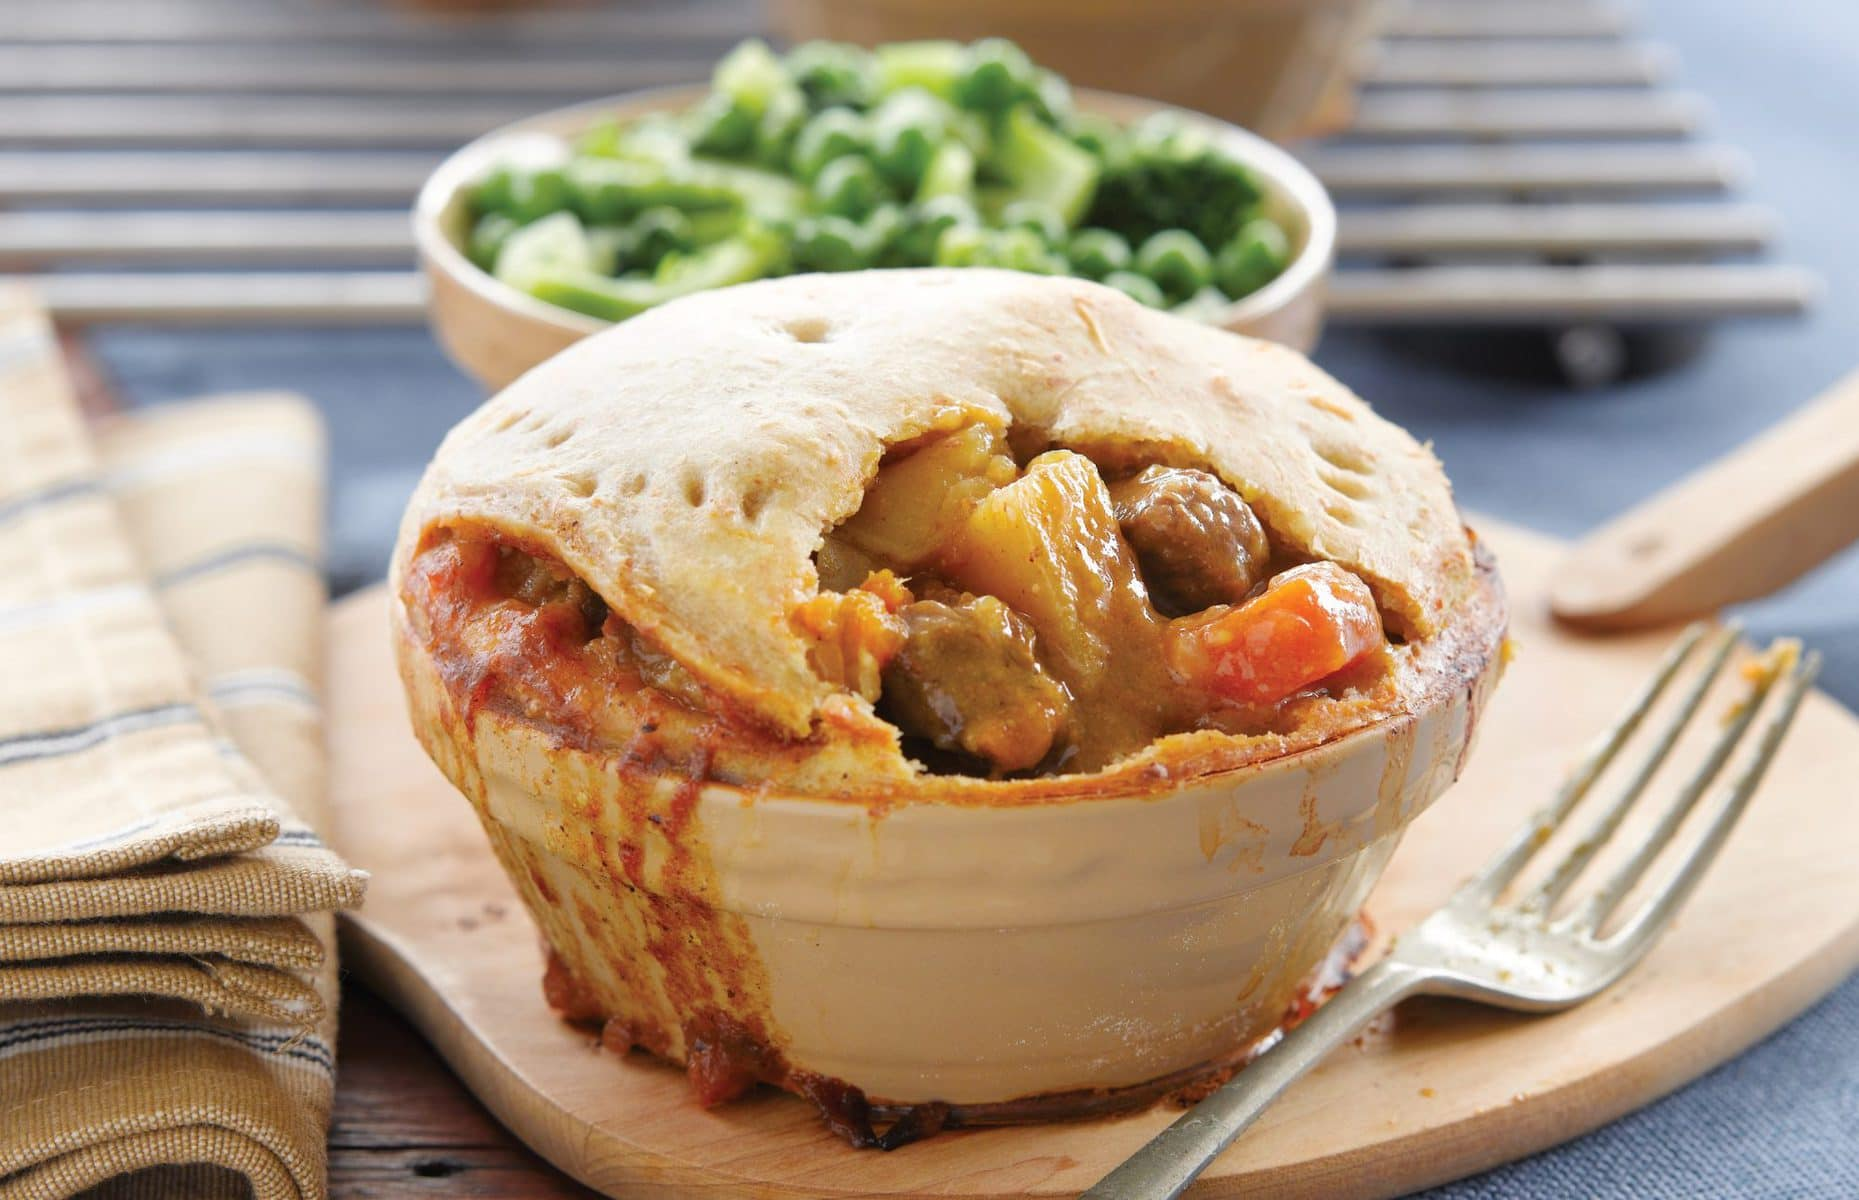 Beef and vegetable pies